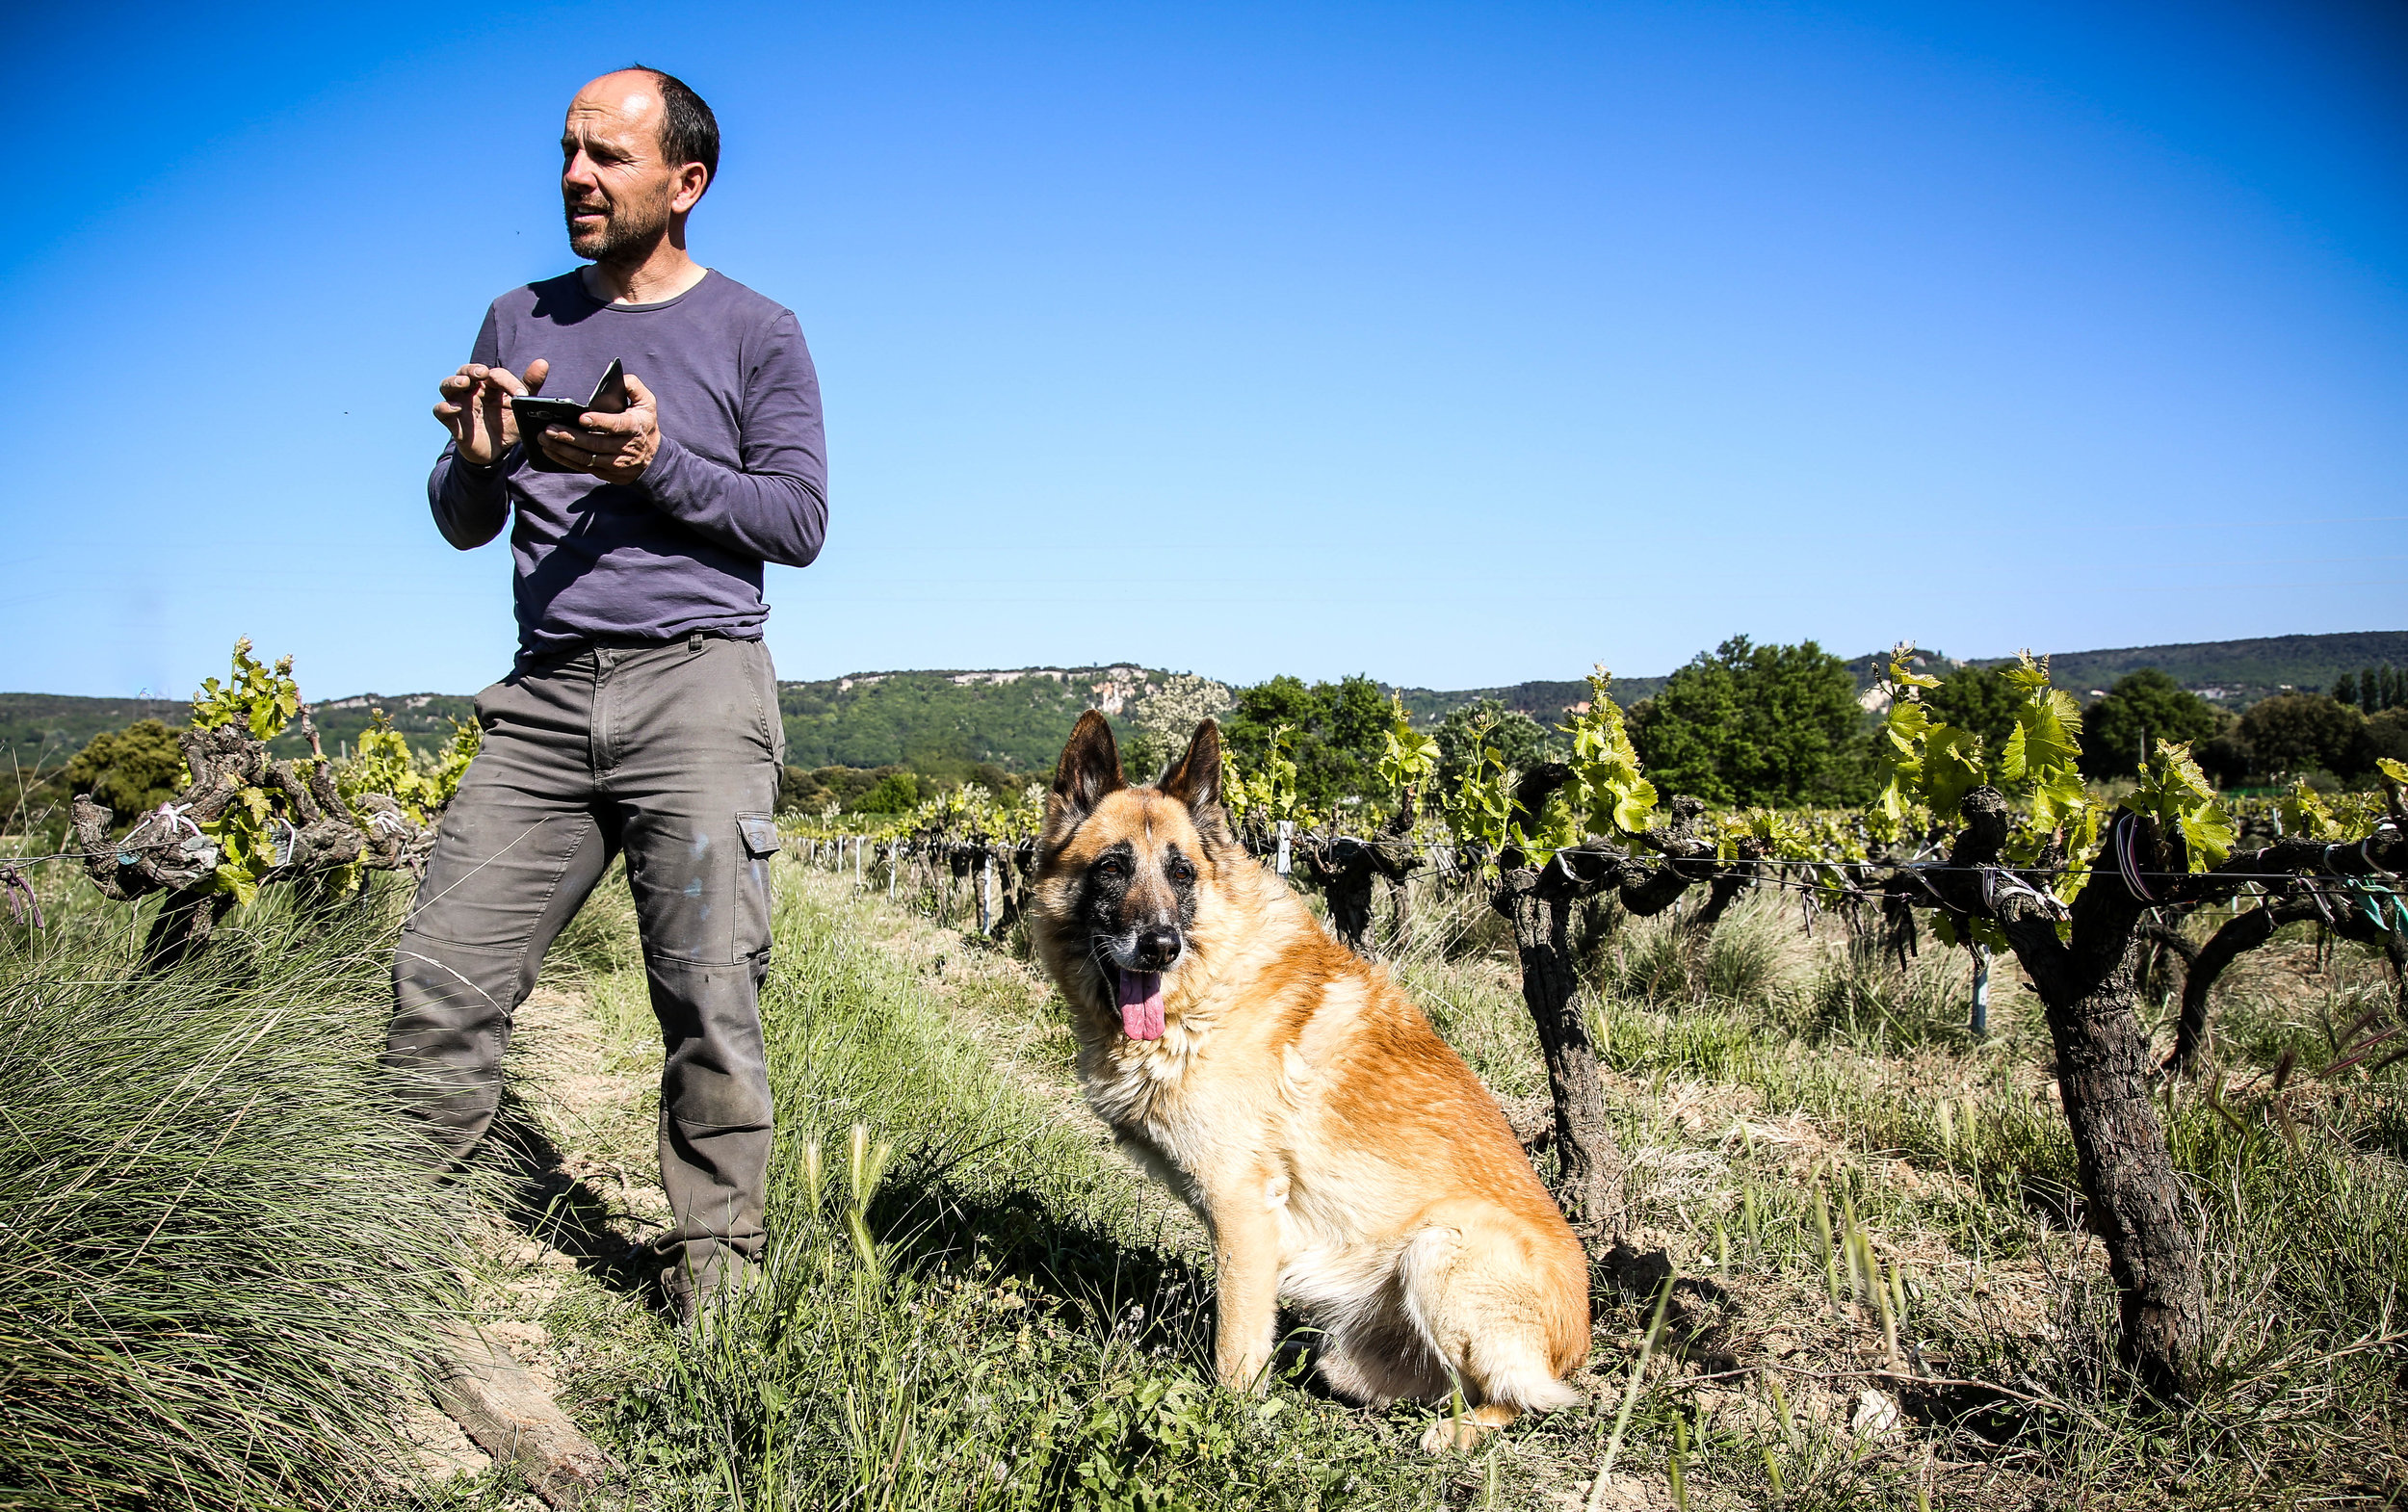 Vigneron, Philippe Fabrol with his trusty helper among the vines